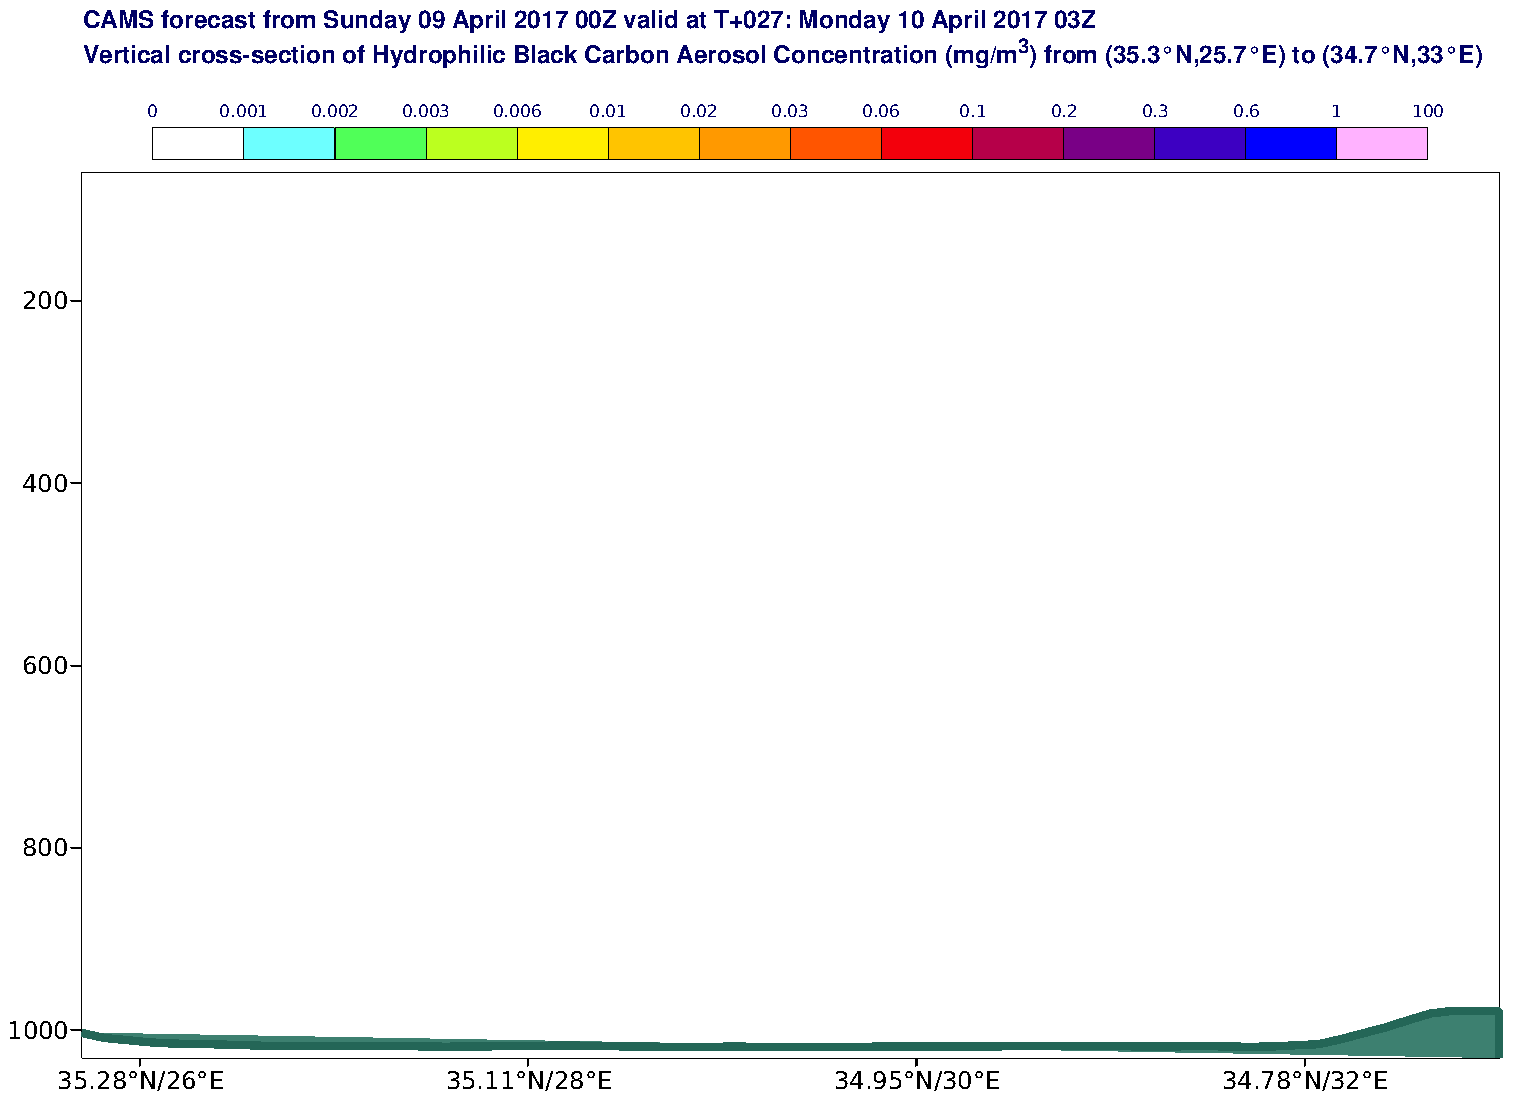 Vertical cross-section of Hydrophilic Black Carbon Aerosol Concentration (mg/m3) valid at T27 - 2017-04-10 03:00